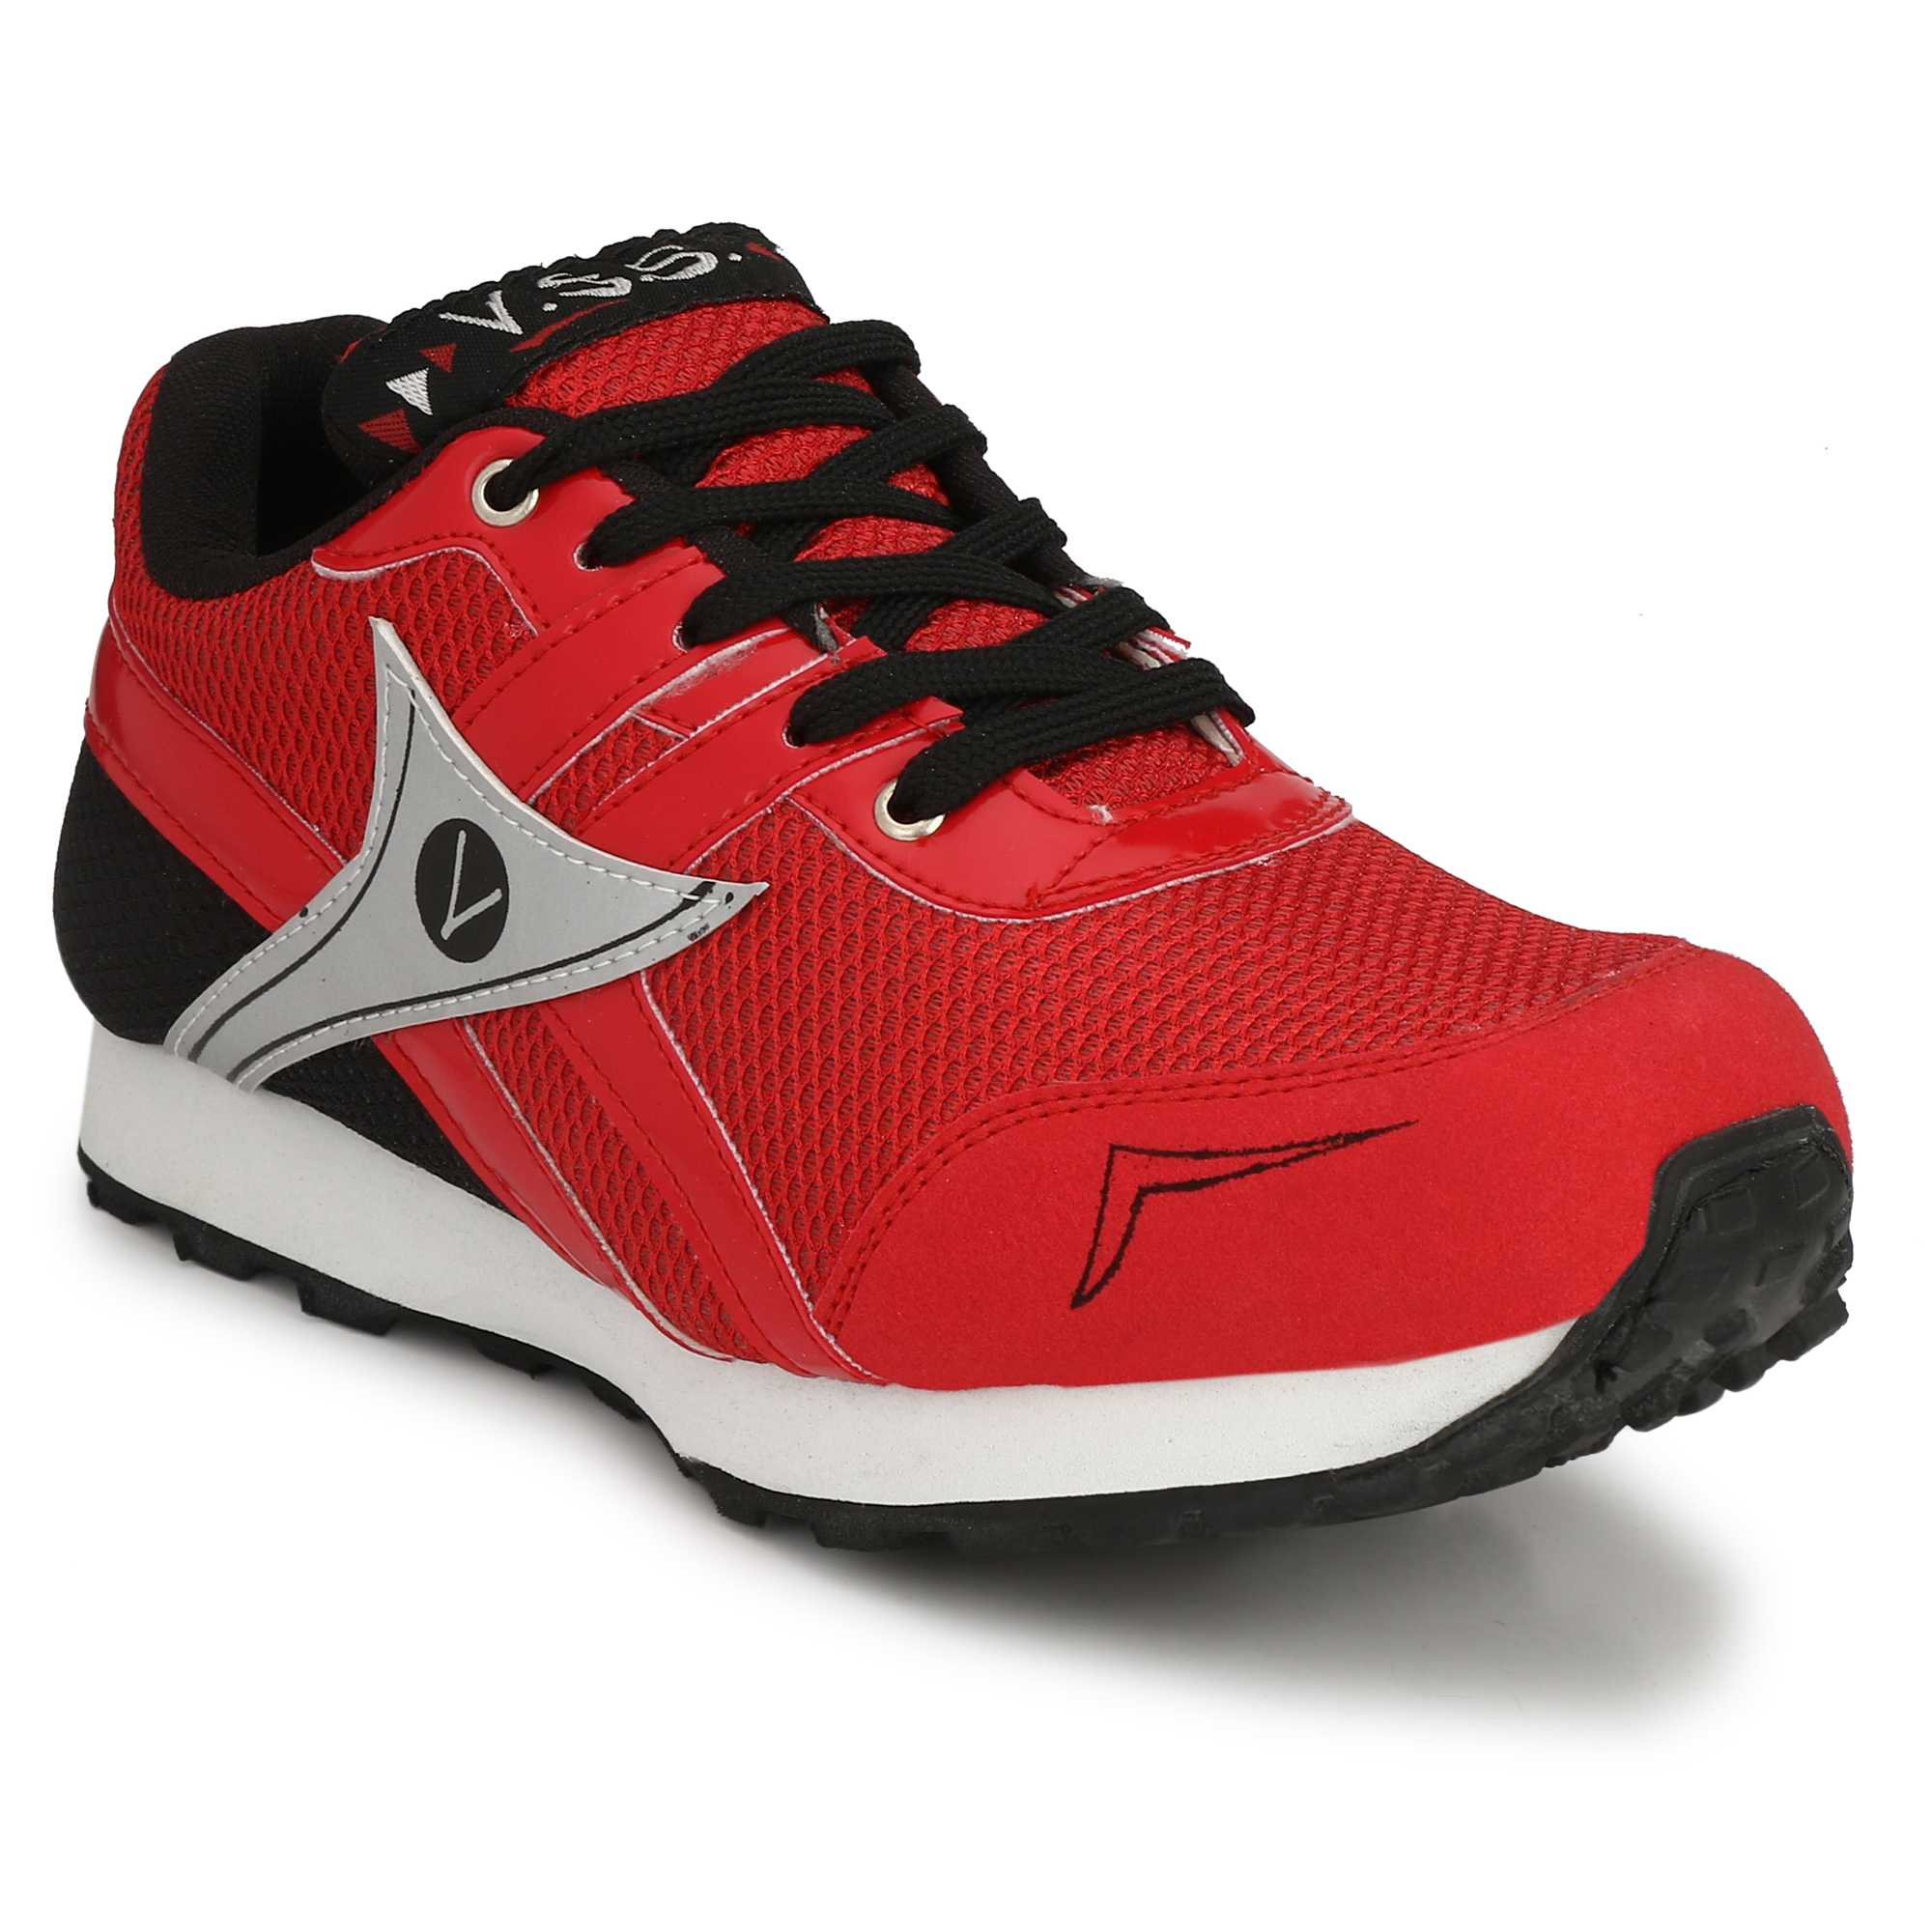 VSS Men's Red Suede Jogging Sports Shoes  BCK036-RED (Red,6-14,8 PAIR)